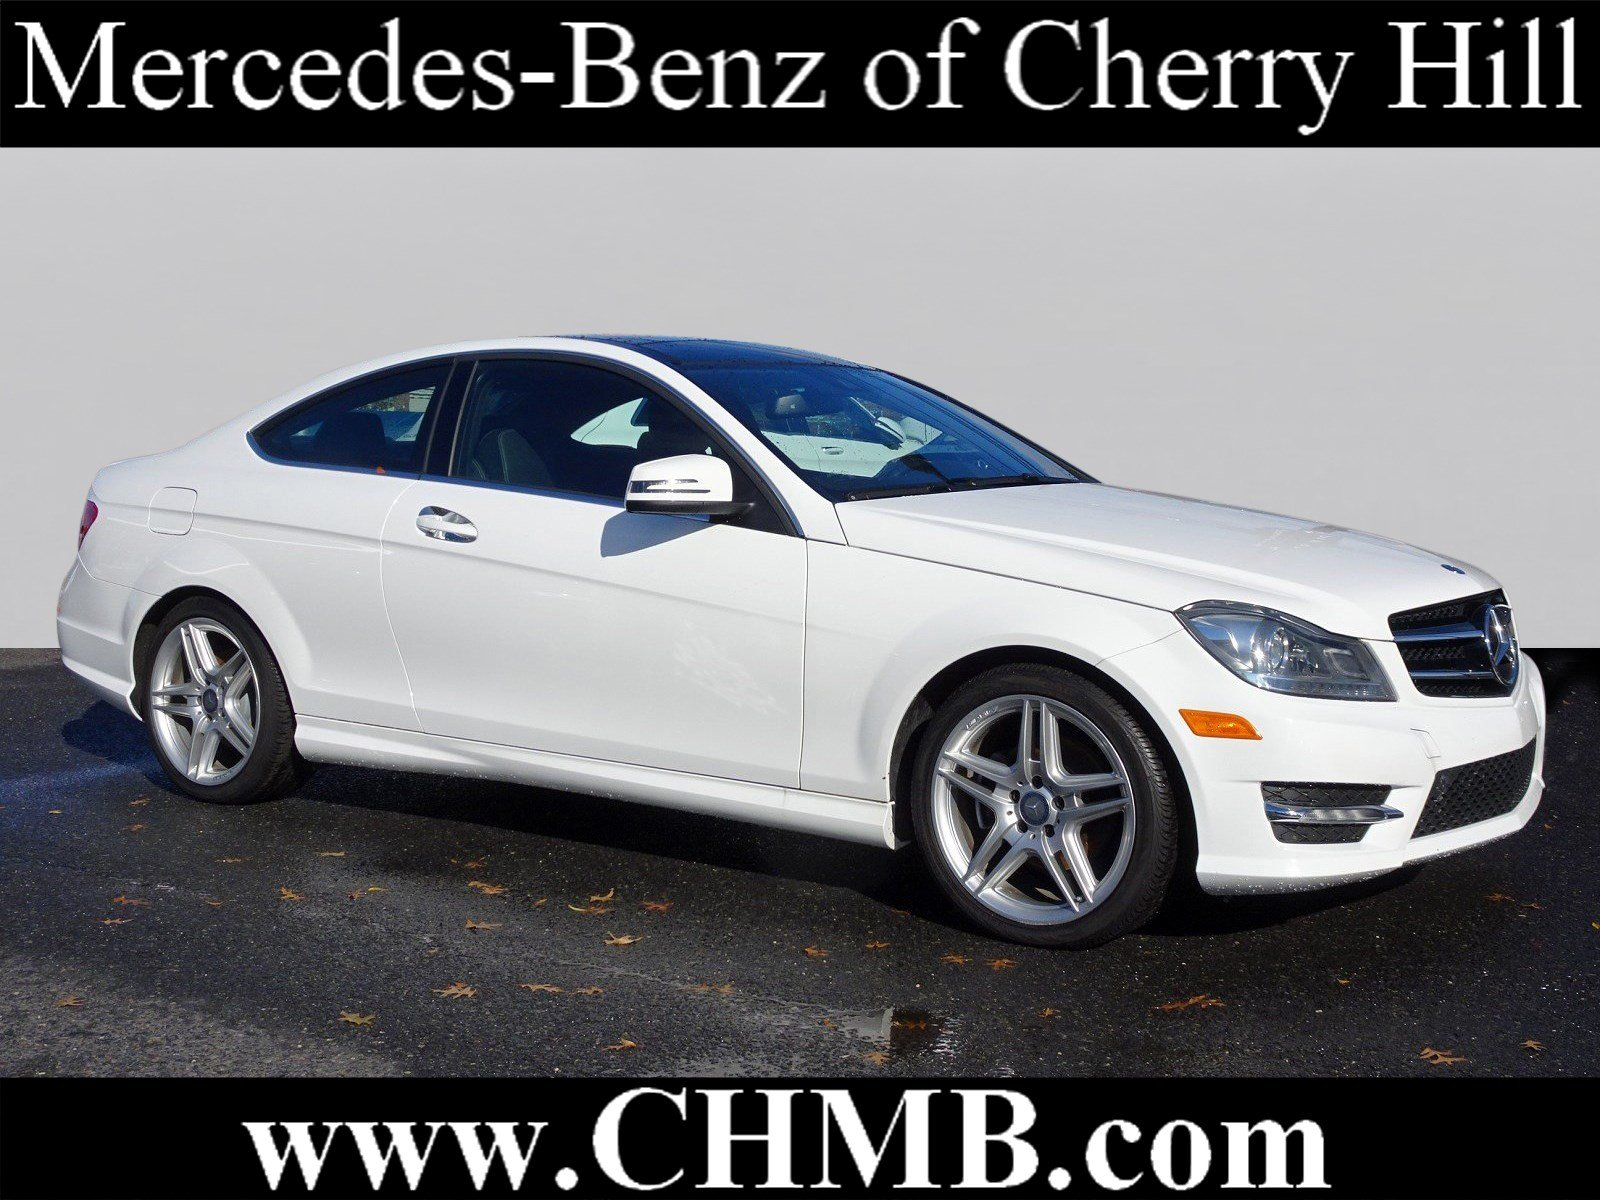 Pre Owned 2015 Mercedes Benz C Class C 250 COUPE in Cherry Hill